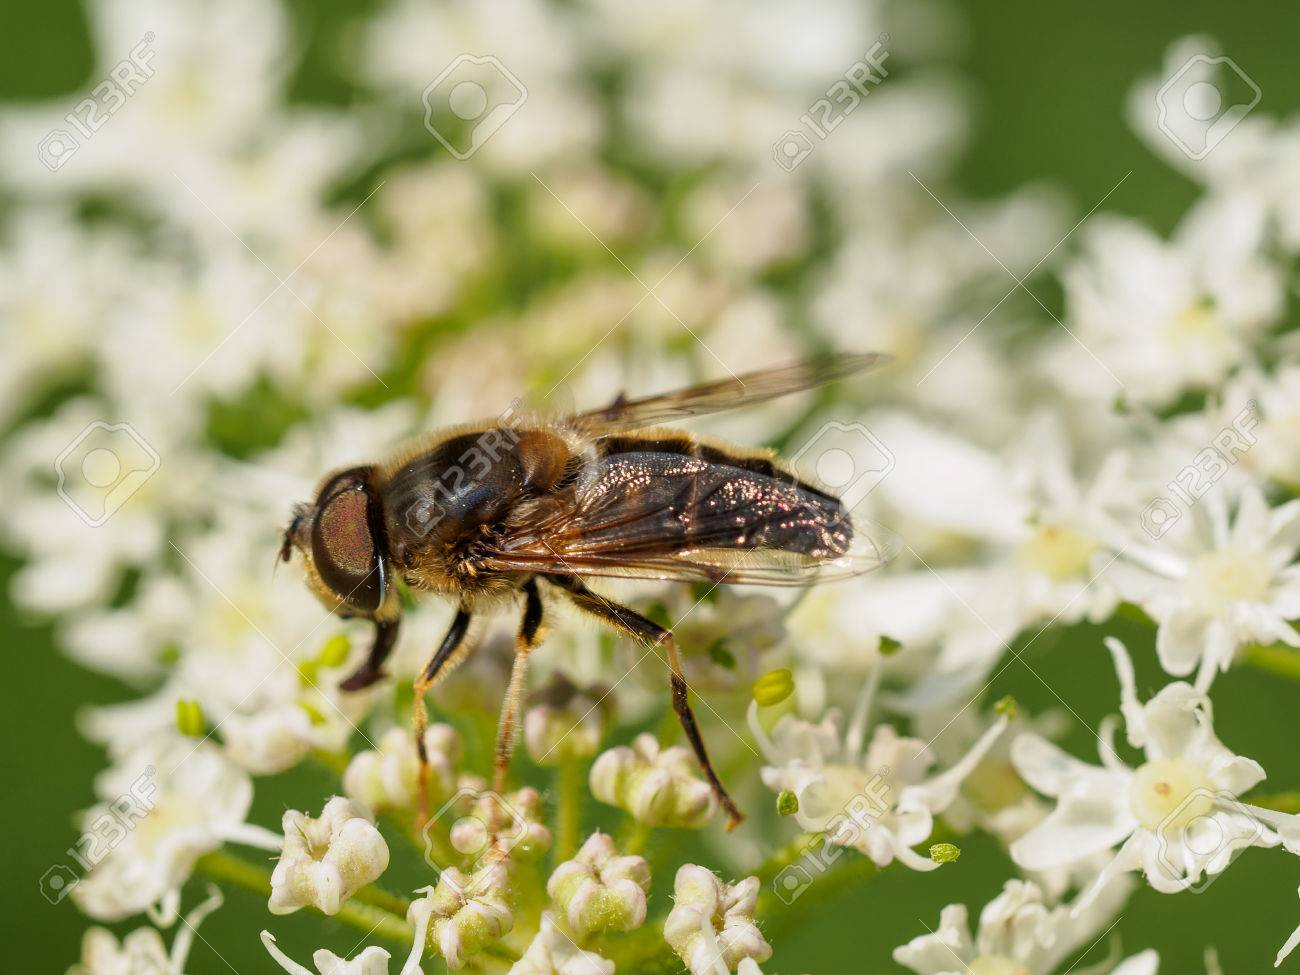 Extreme closeup of a fly on wild white flowers stock photo picture extreme closeup of a fly on wild white flowers stock photo 43948637 mightylinksfo